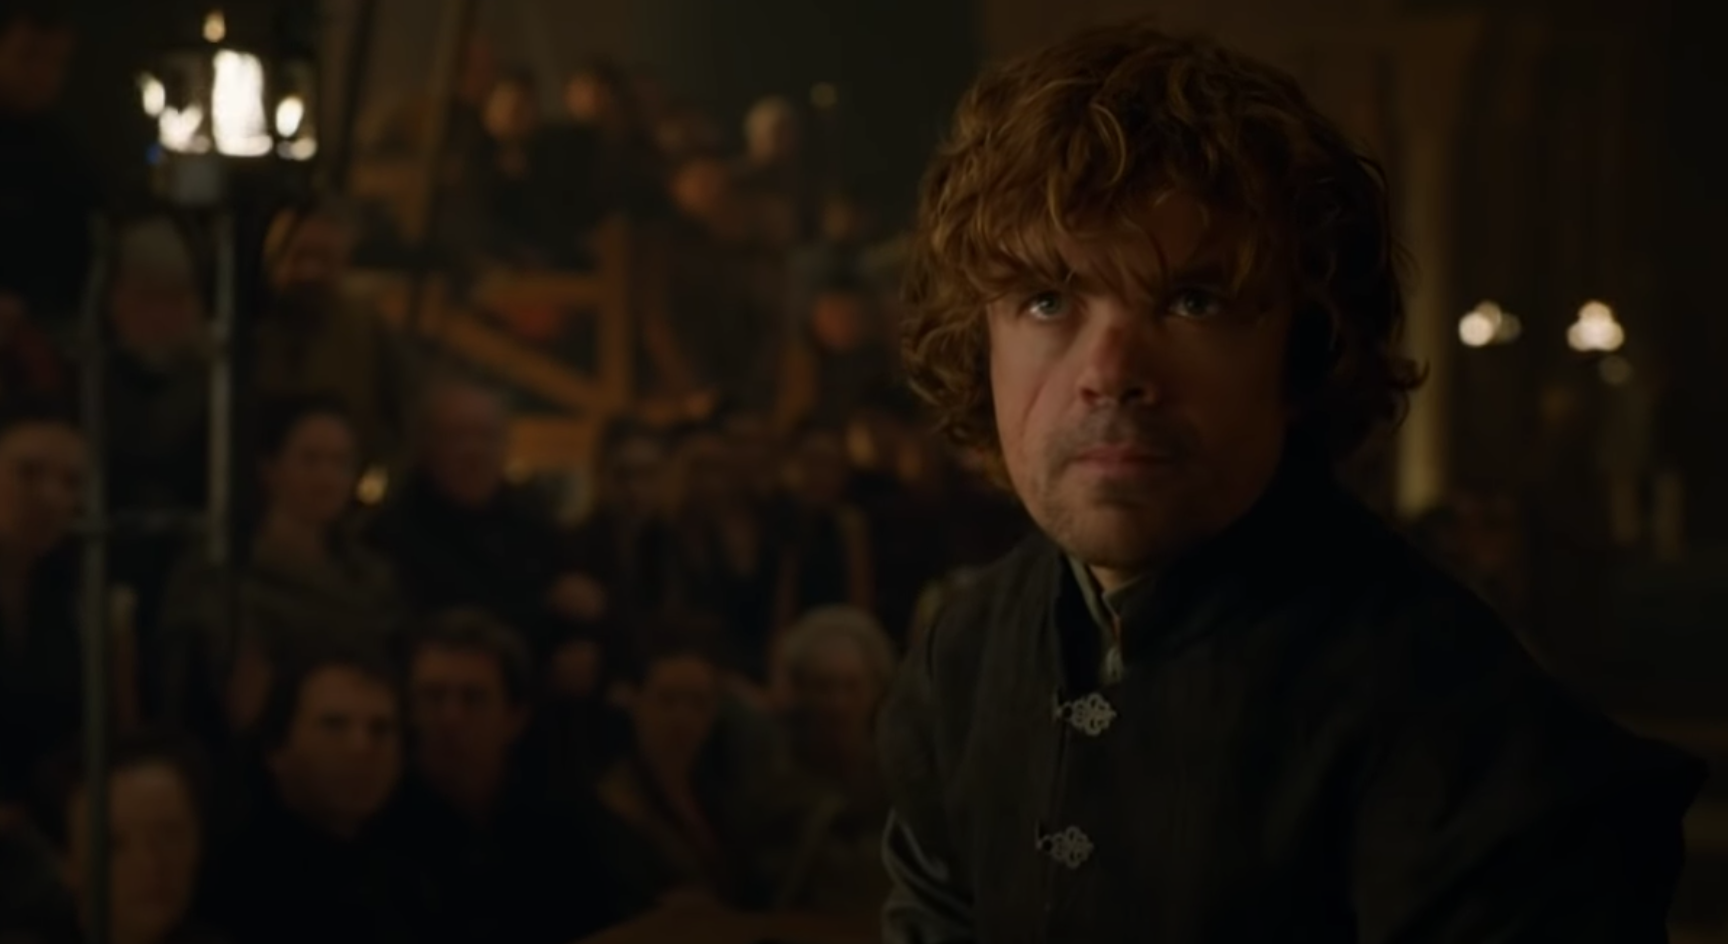 Still from Game of Thrones: Tyrion stands trial in a crowded thrown room